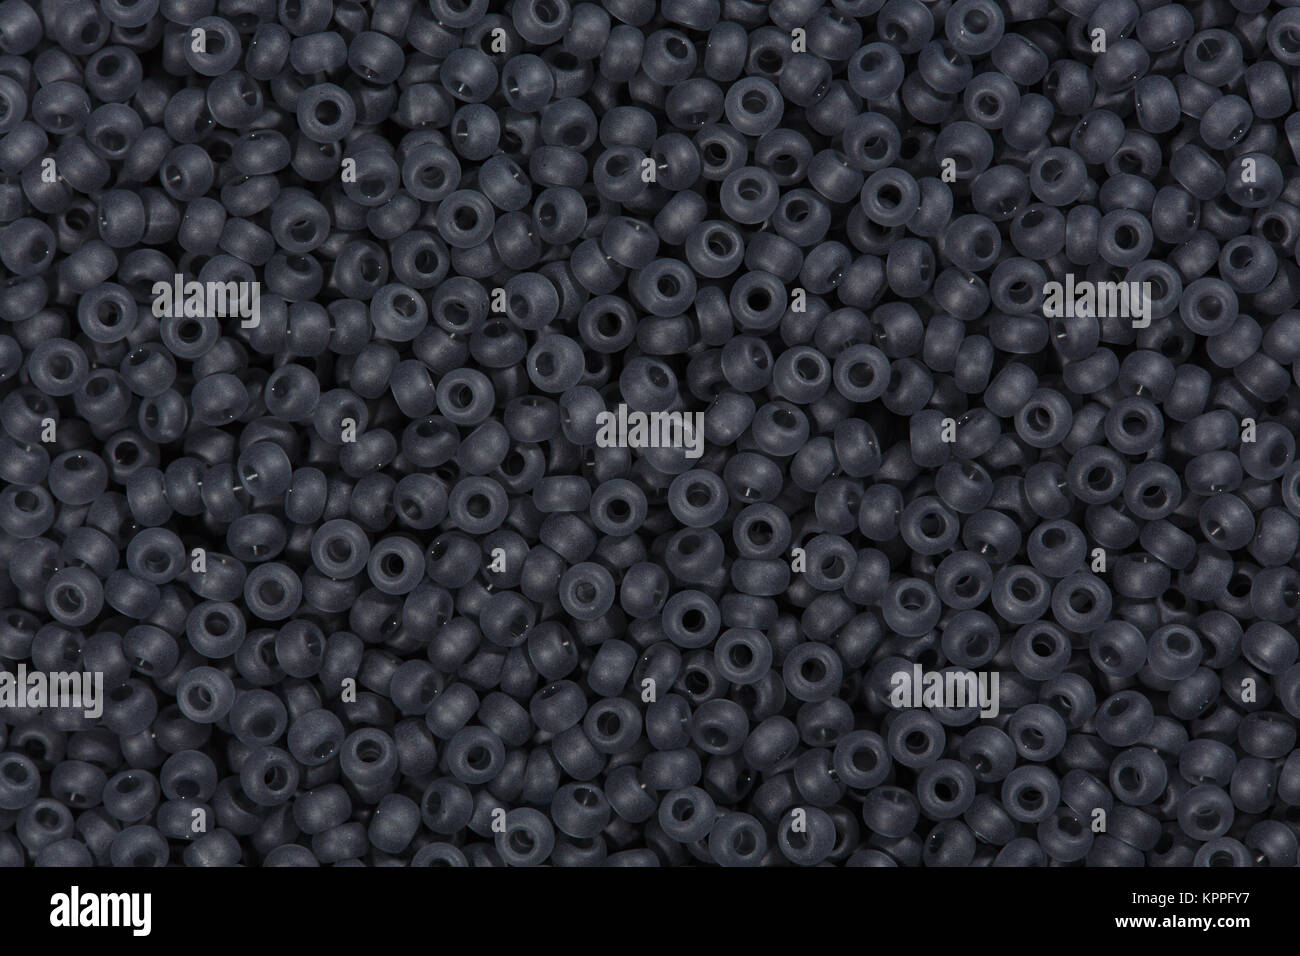 Glass seed beads background. - Stock Image